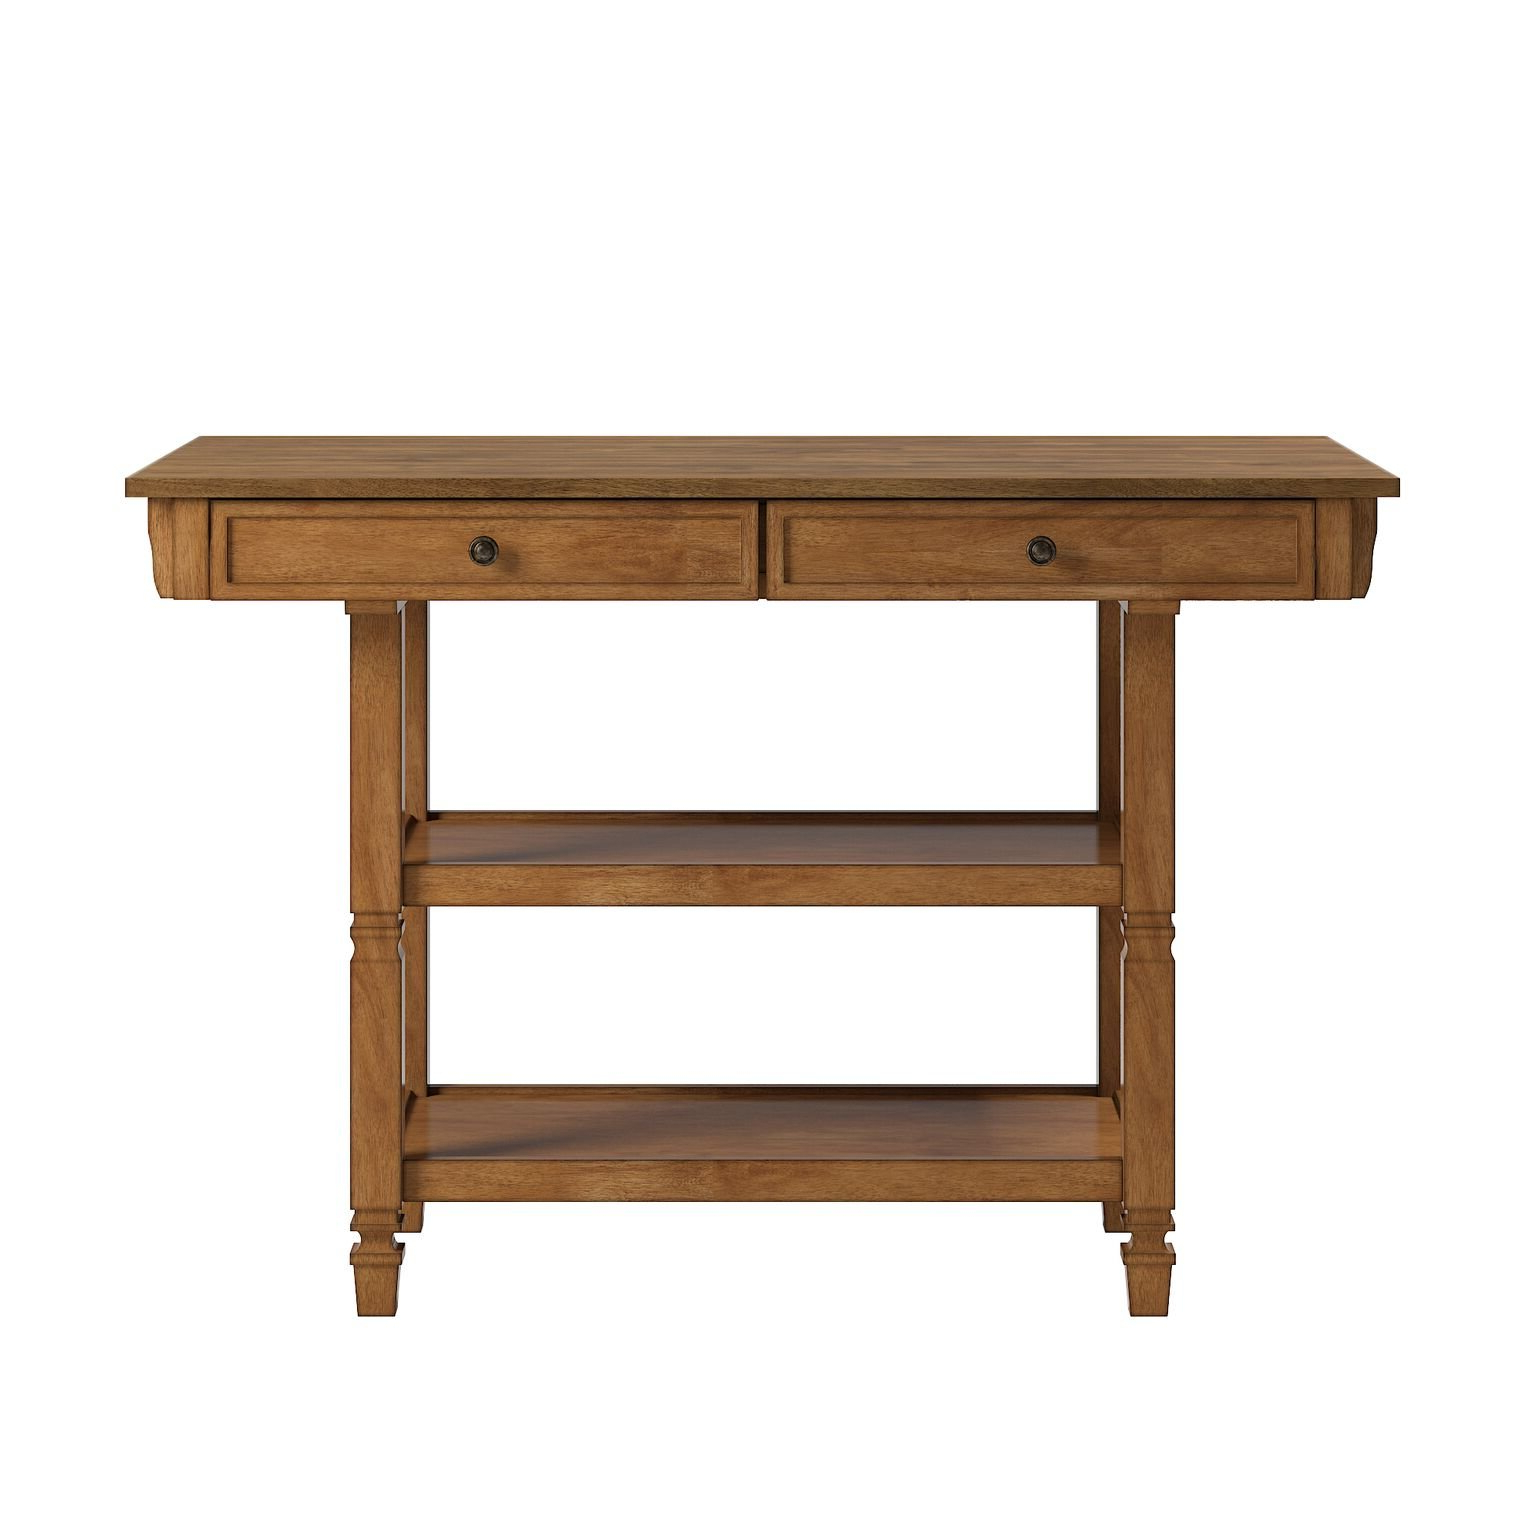 Kitchen & Dining Room Furniture Sale Under $500   Joss & Main For Desert Crystals Theme Credenzas (Gallery 20 of 20)